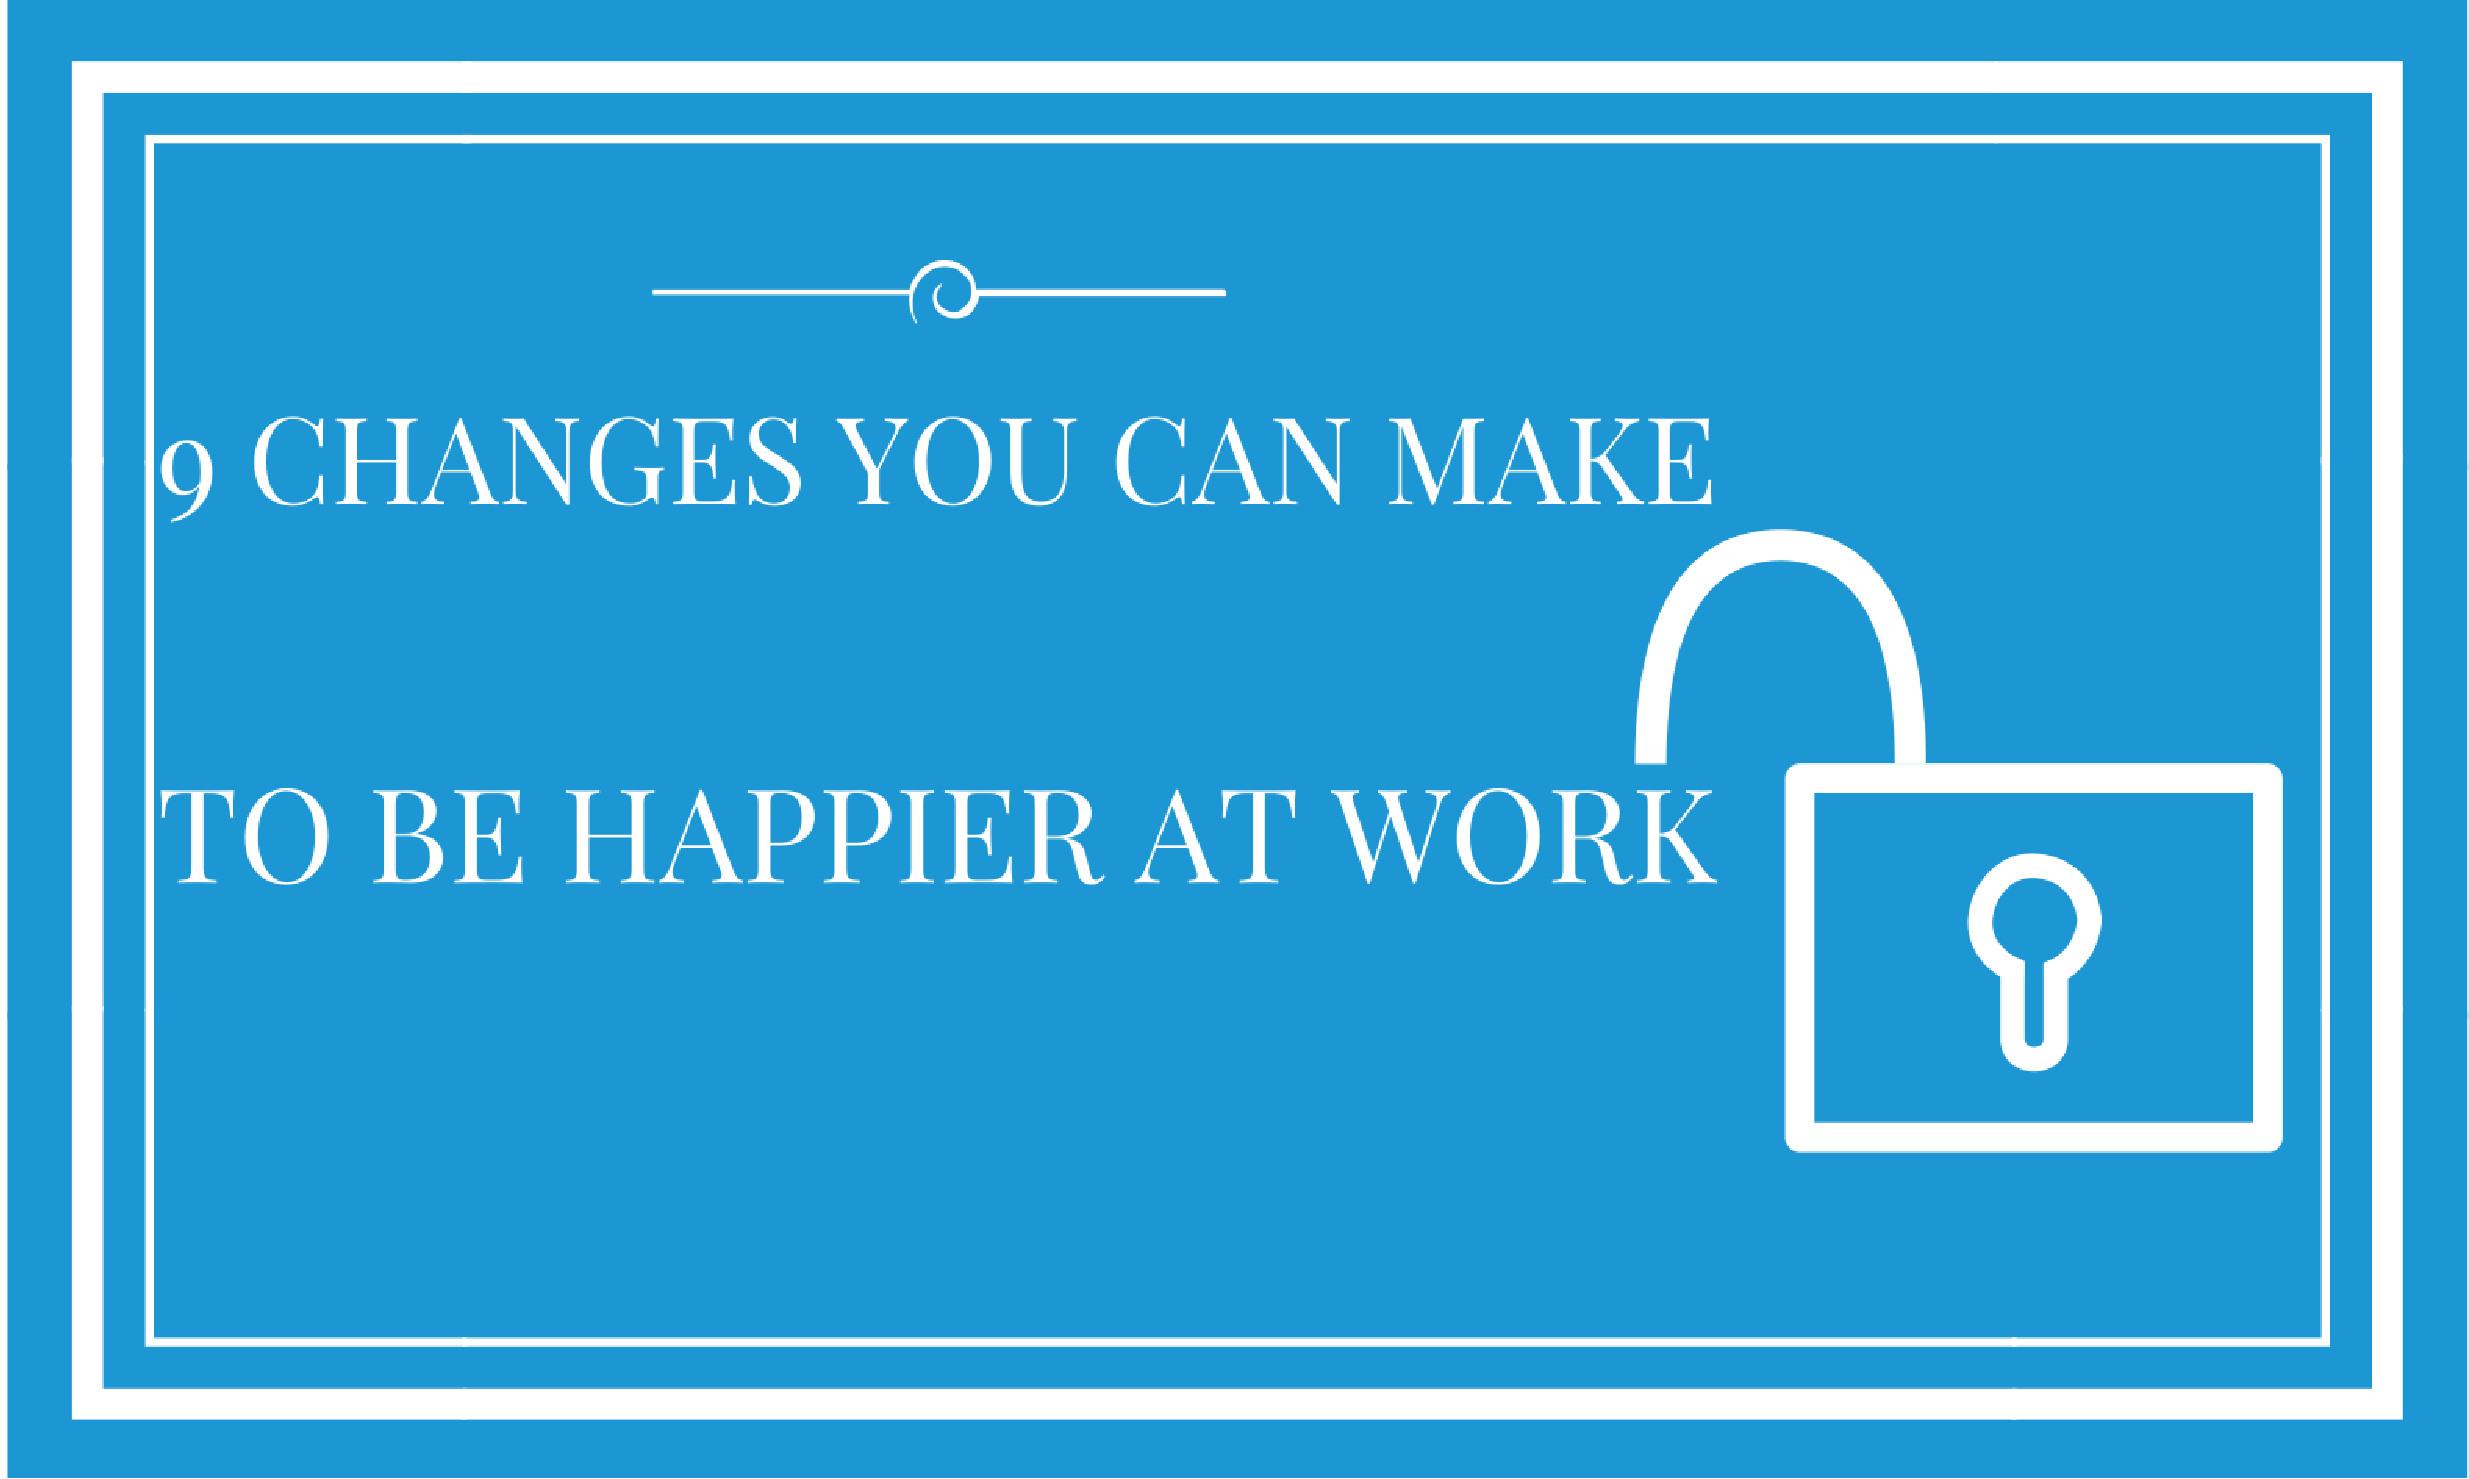 9 Changes You Can Make To Be Happier At Work